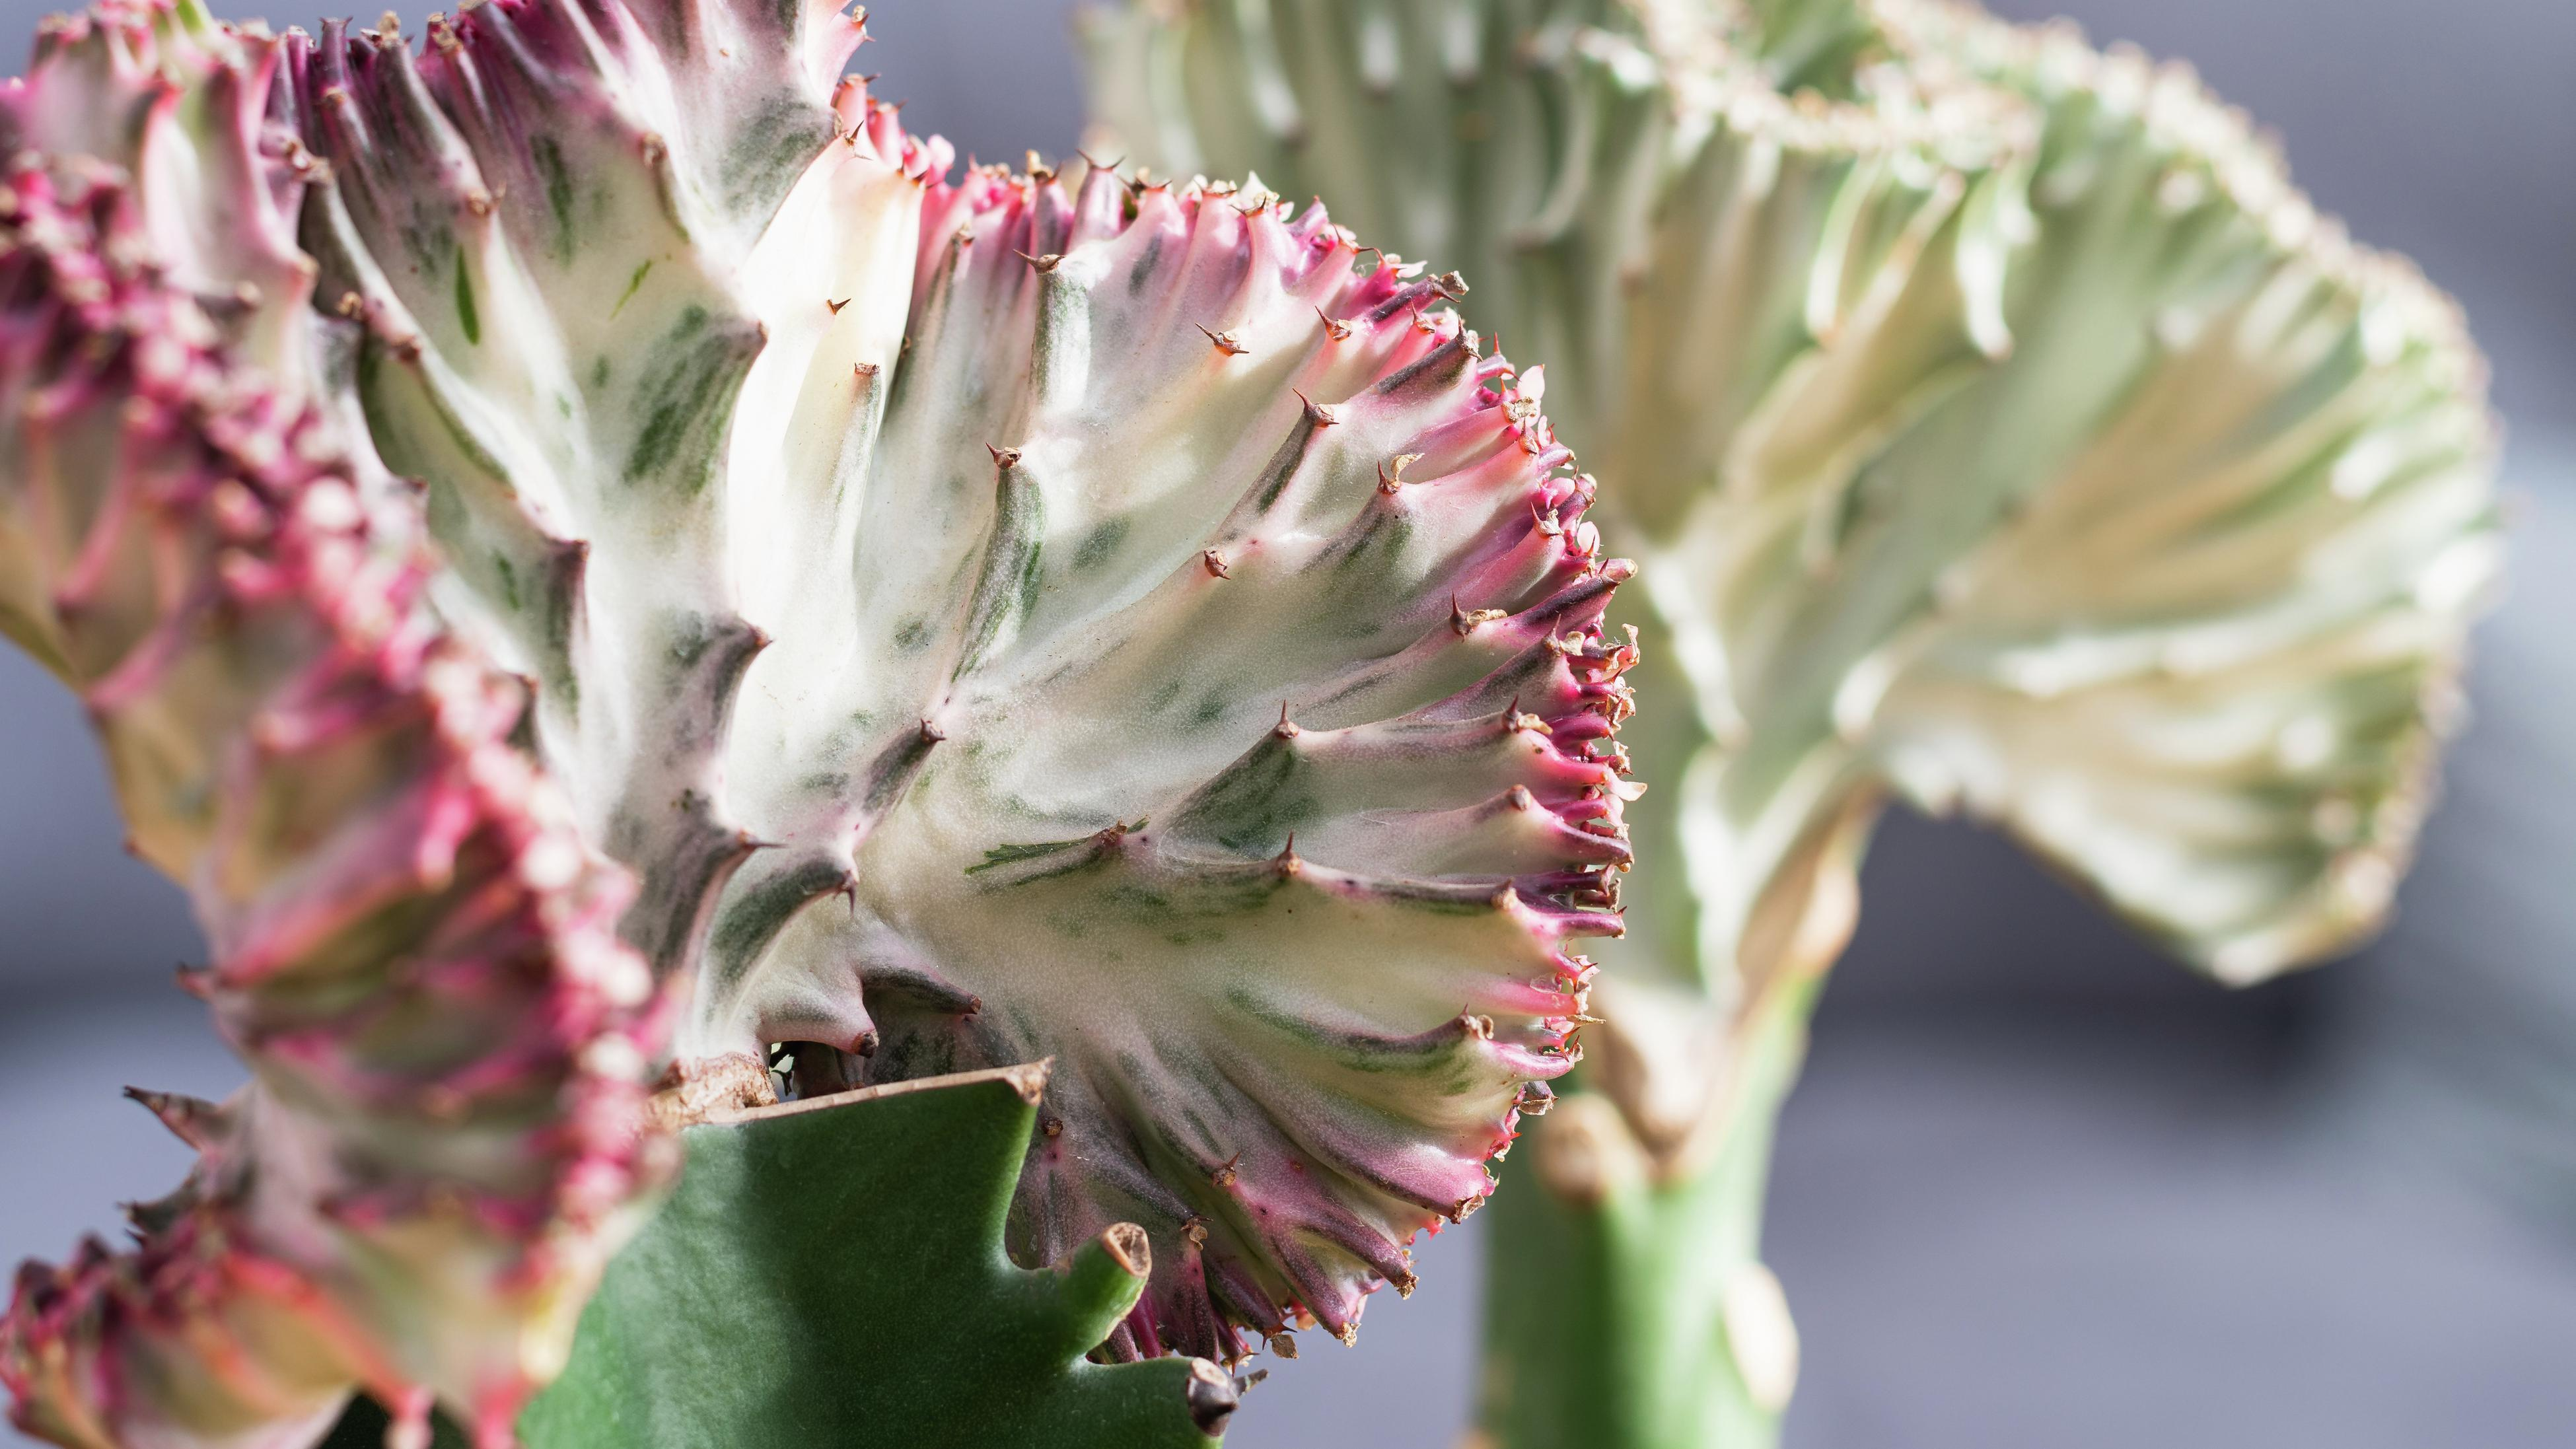 close up of a mermaid tale succulent with a red tinged edge